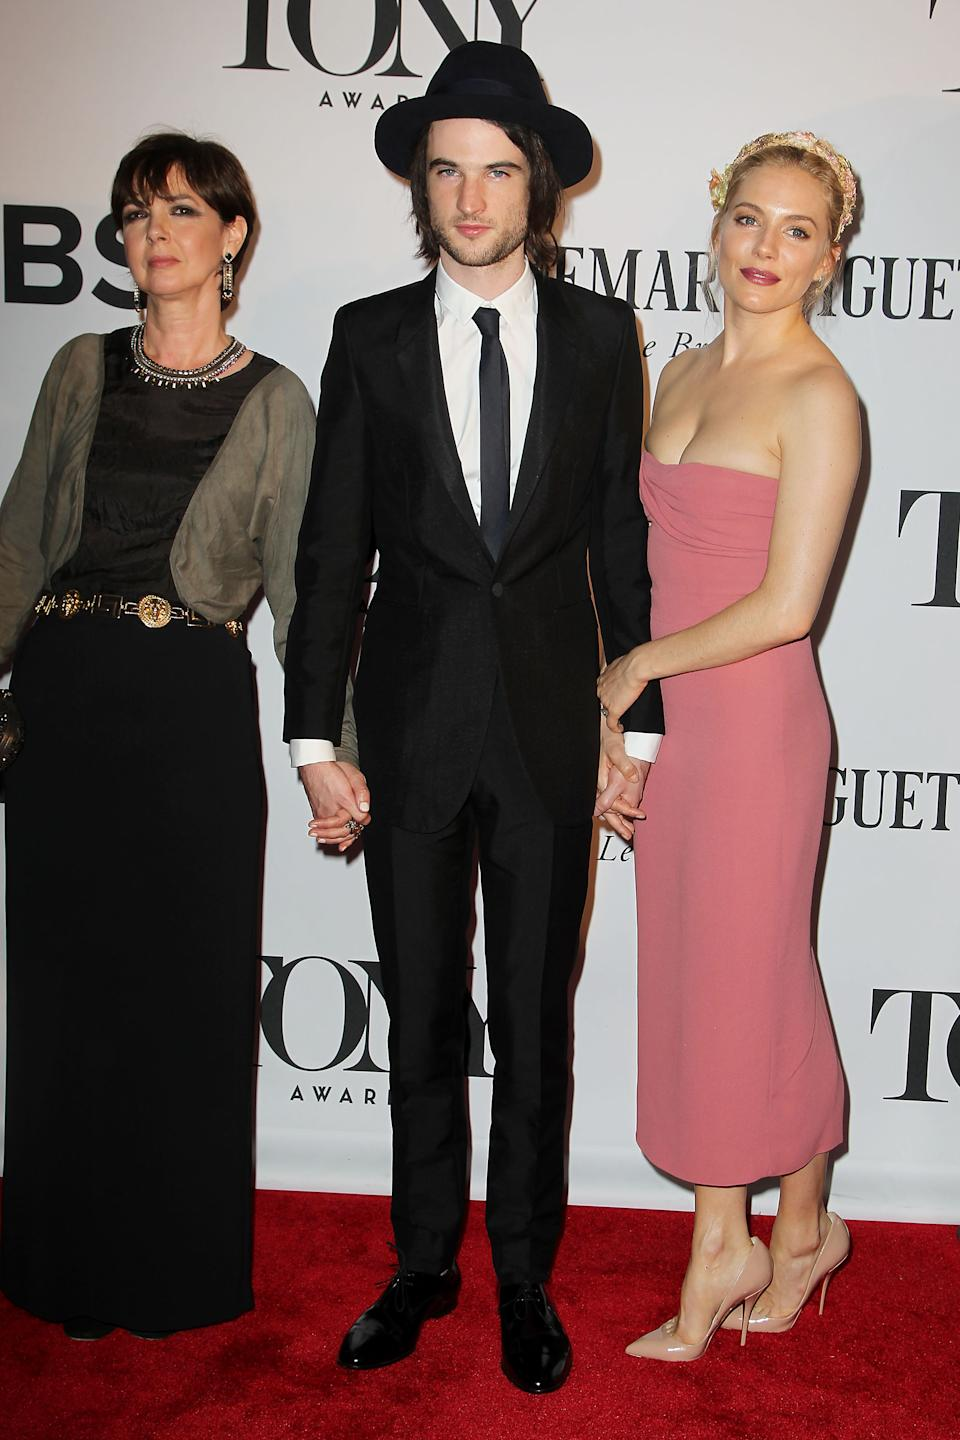 This image released by Starpix shows Tom Sturridge, center, his mother  Phoebe Nicholls, left, and Sienna Miller at the 67th Annual Tony Awards in New York on Sunday, June 9, 2013. (AP Photo/Starpix, Amanda Schwab)